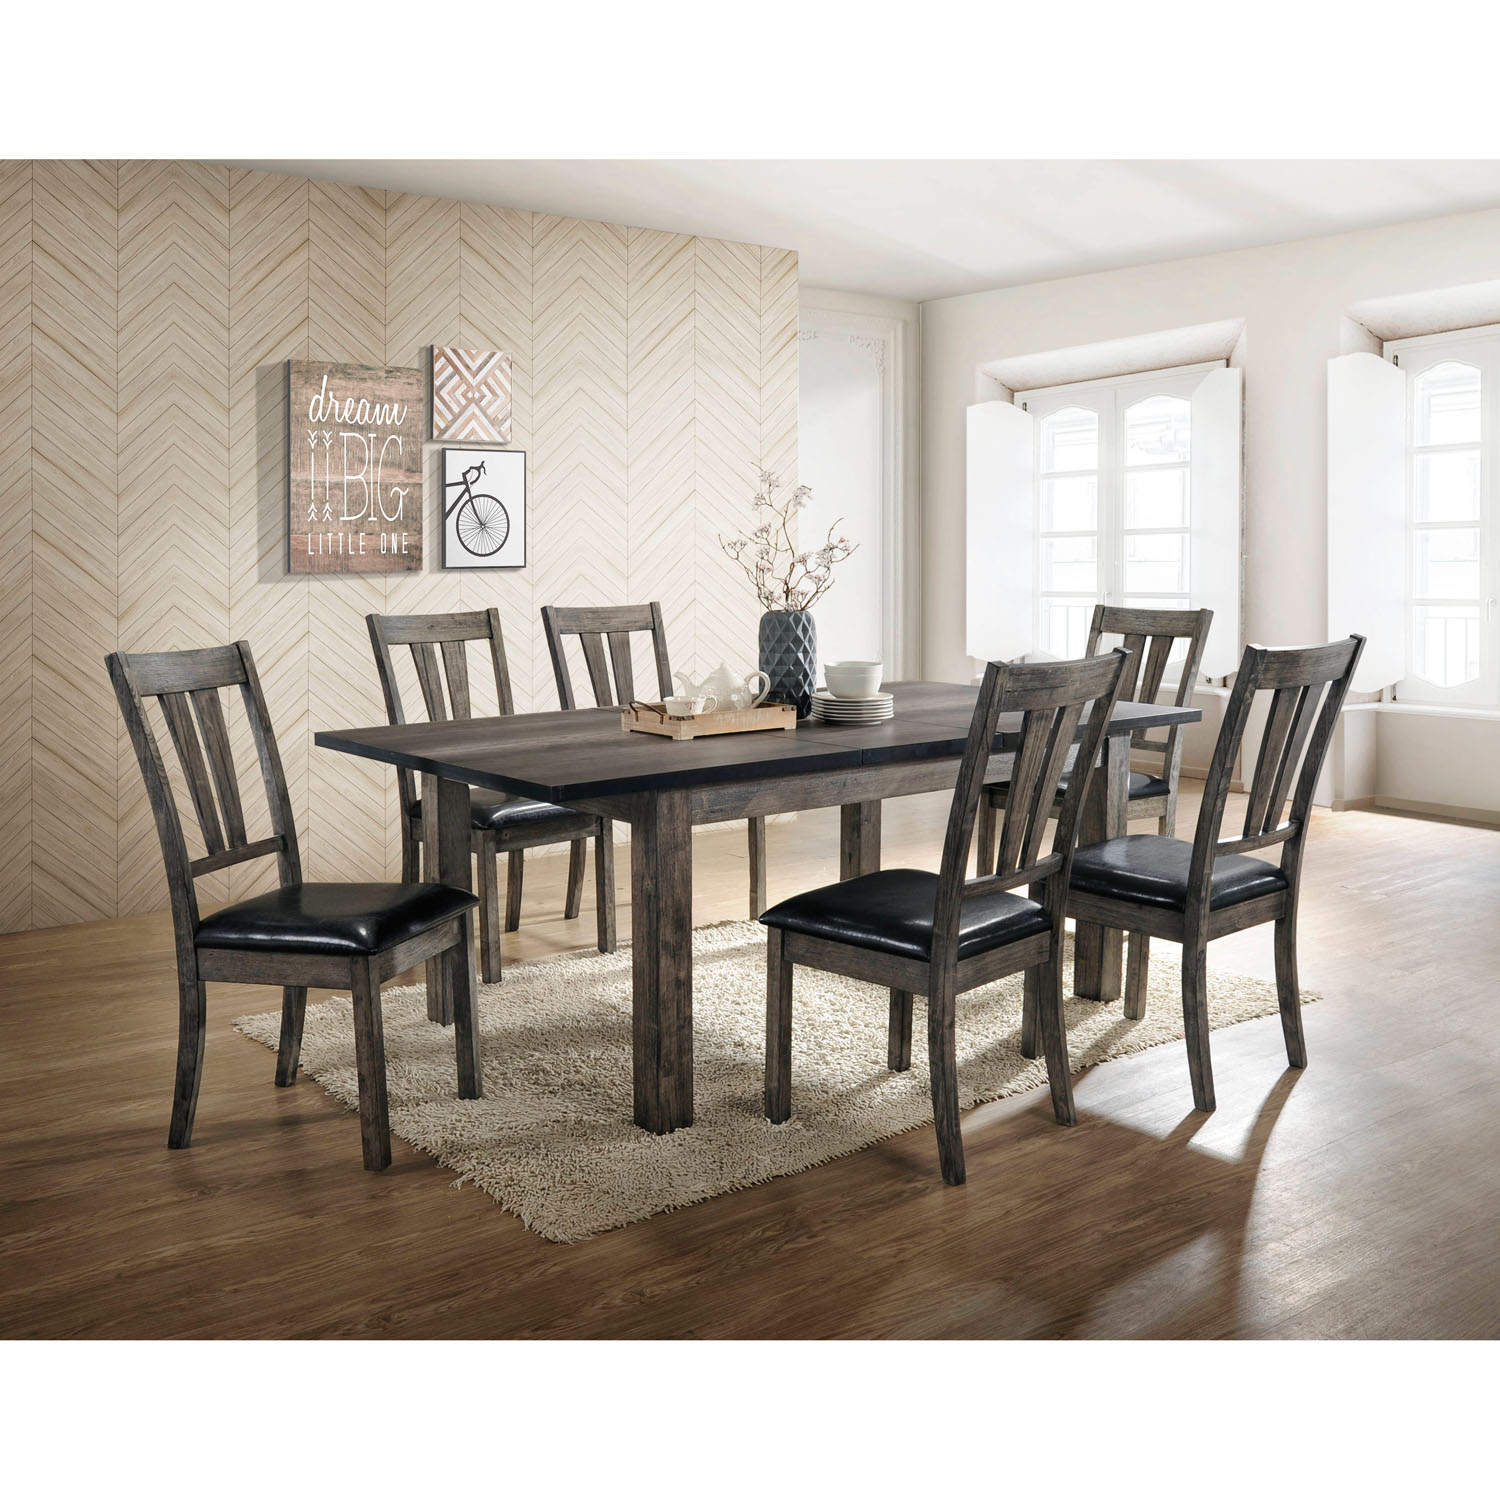 Oak Table And Chairs You Ll Love In 2021 Visualhunt